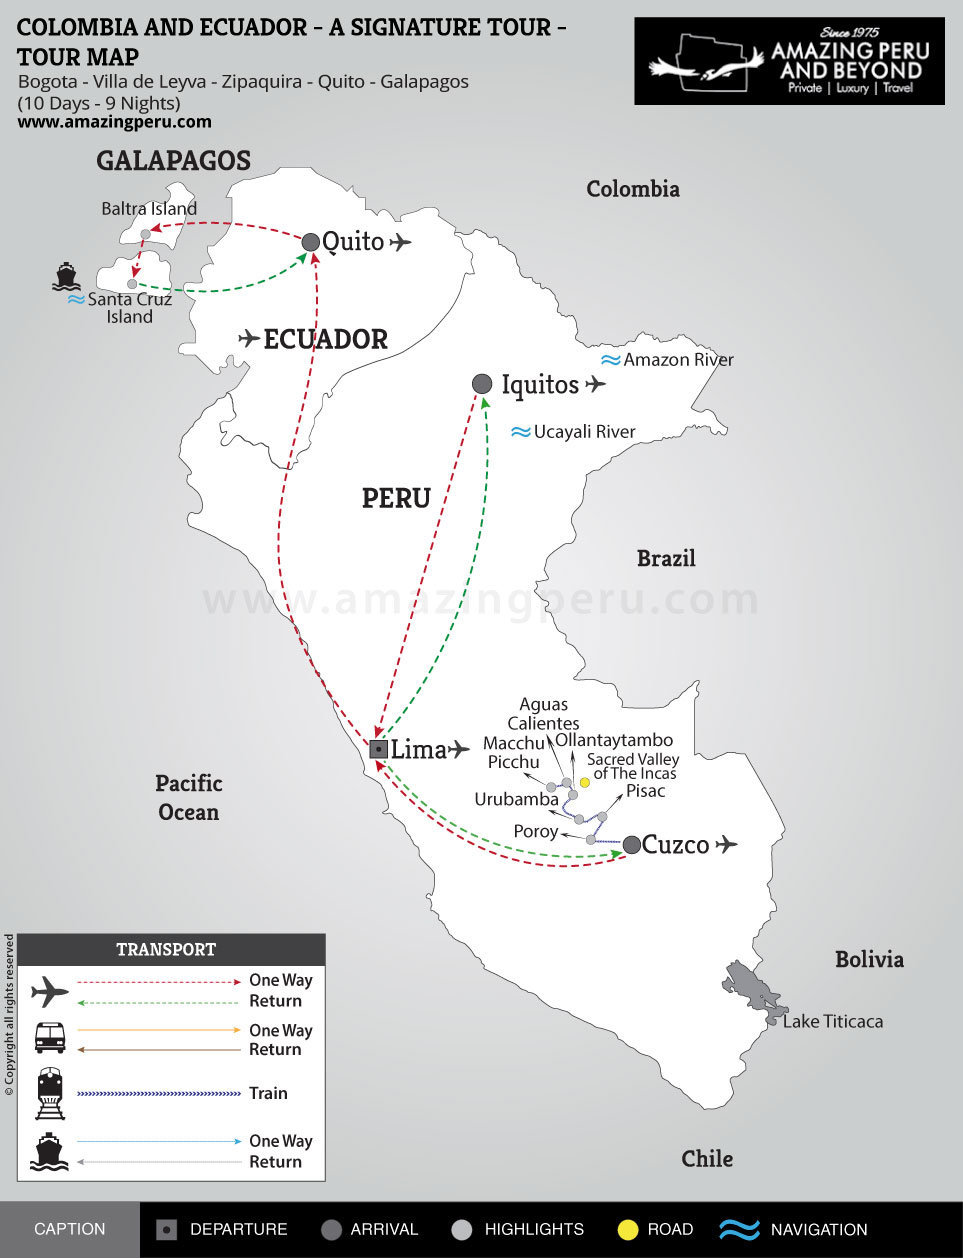 Colombia and Ecuador - A signature Tour - 10 days / 9 nights.